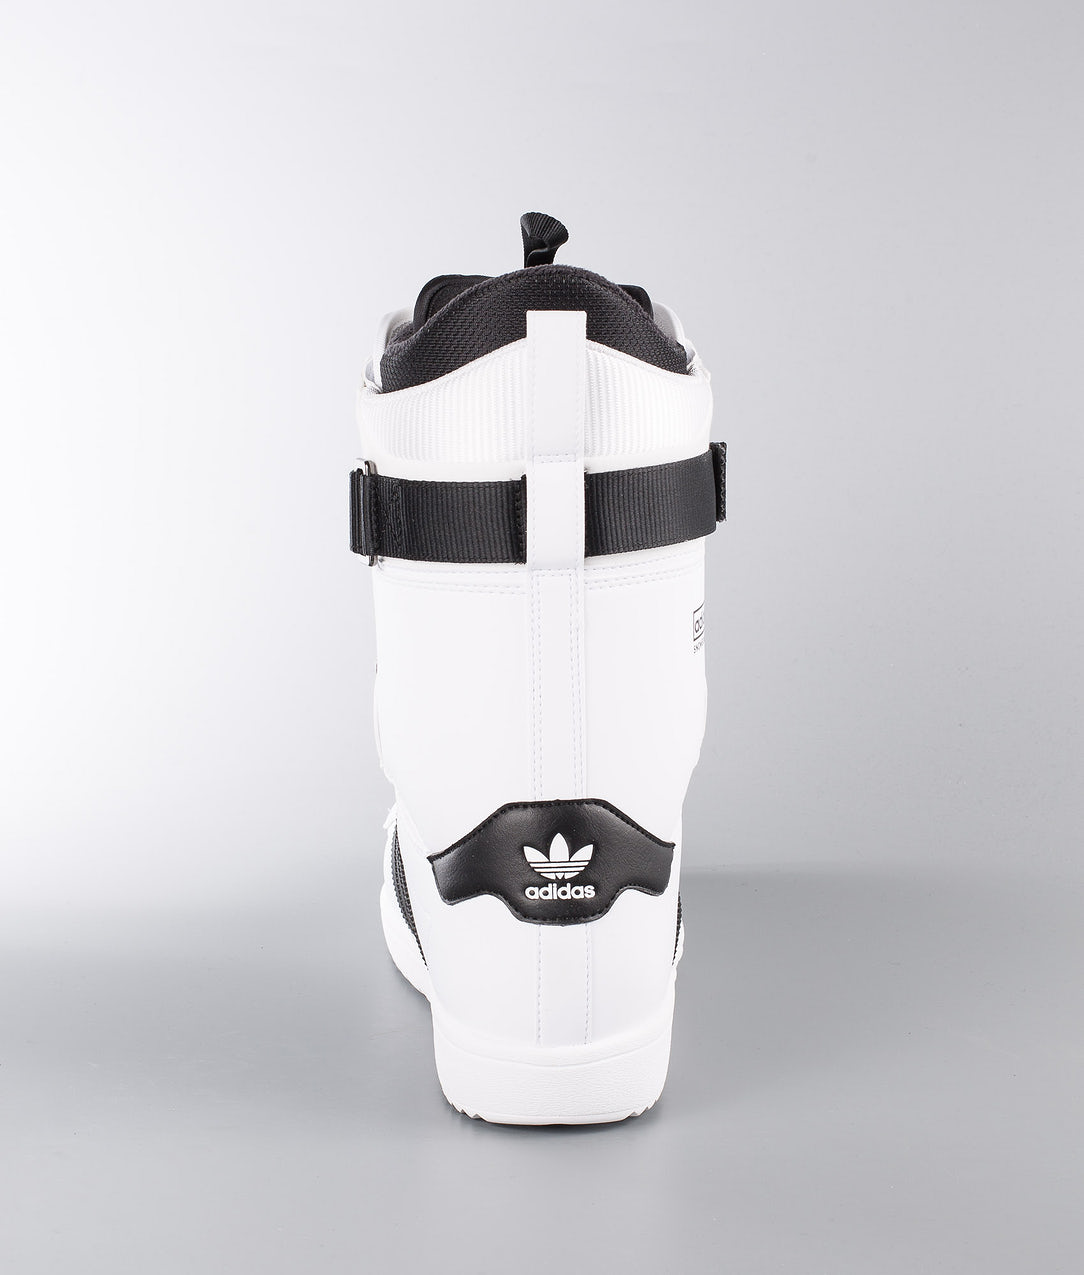 on sale f41bc 8a296 Adidas Snowboarding Superstar Adv Snowboard Boots Ftwr White/Core  Black/Ftwr White